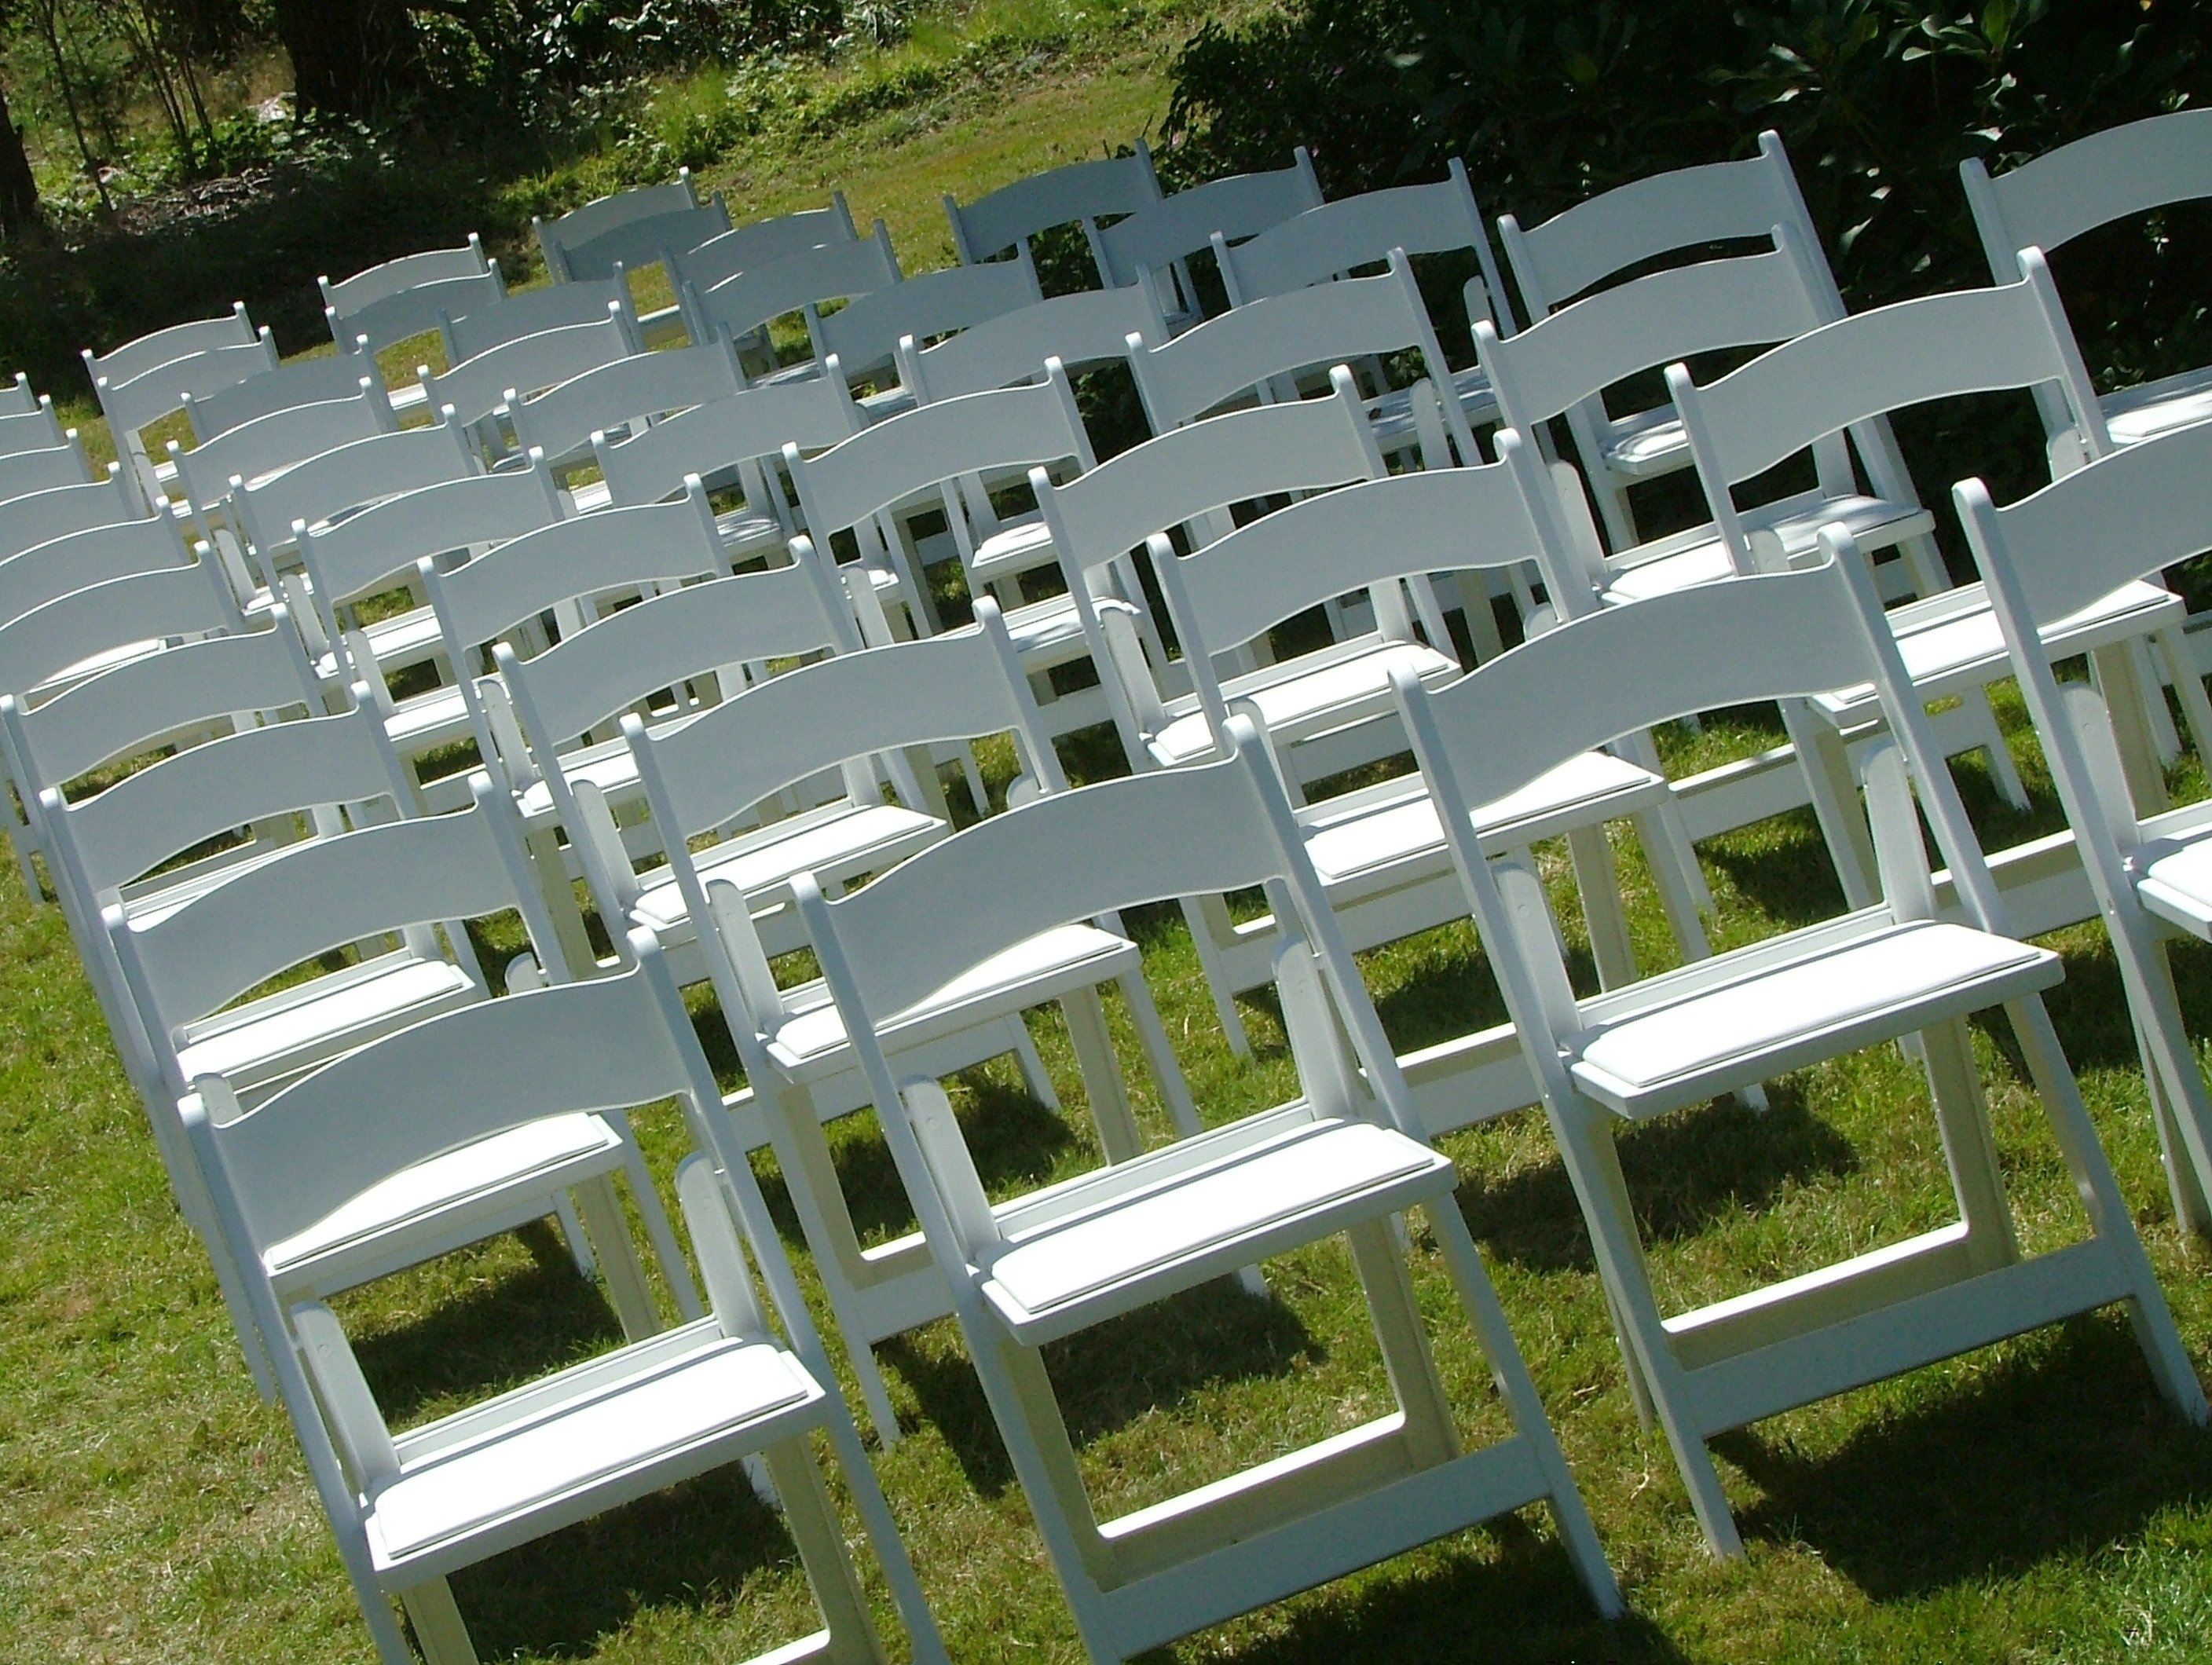 File:Outdoor Wedding Chairs 2816px.jpg